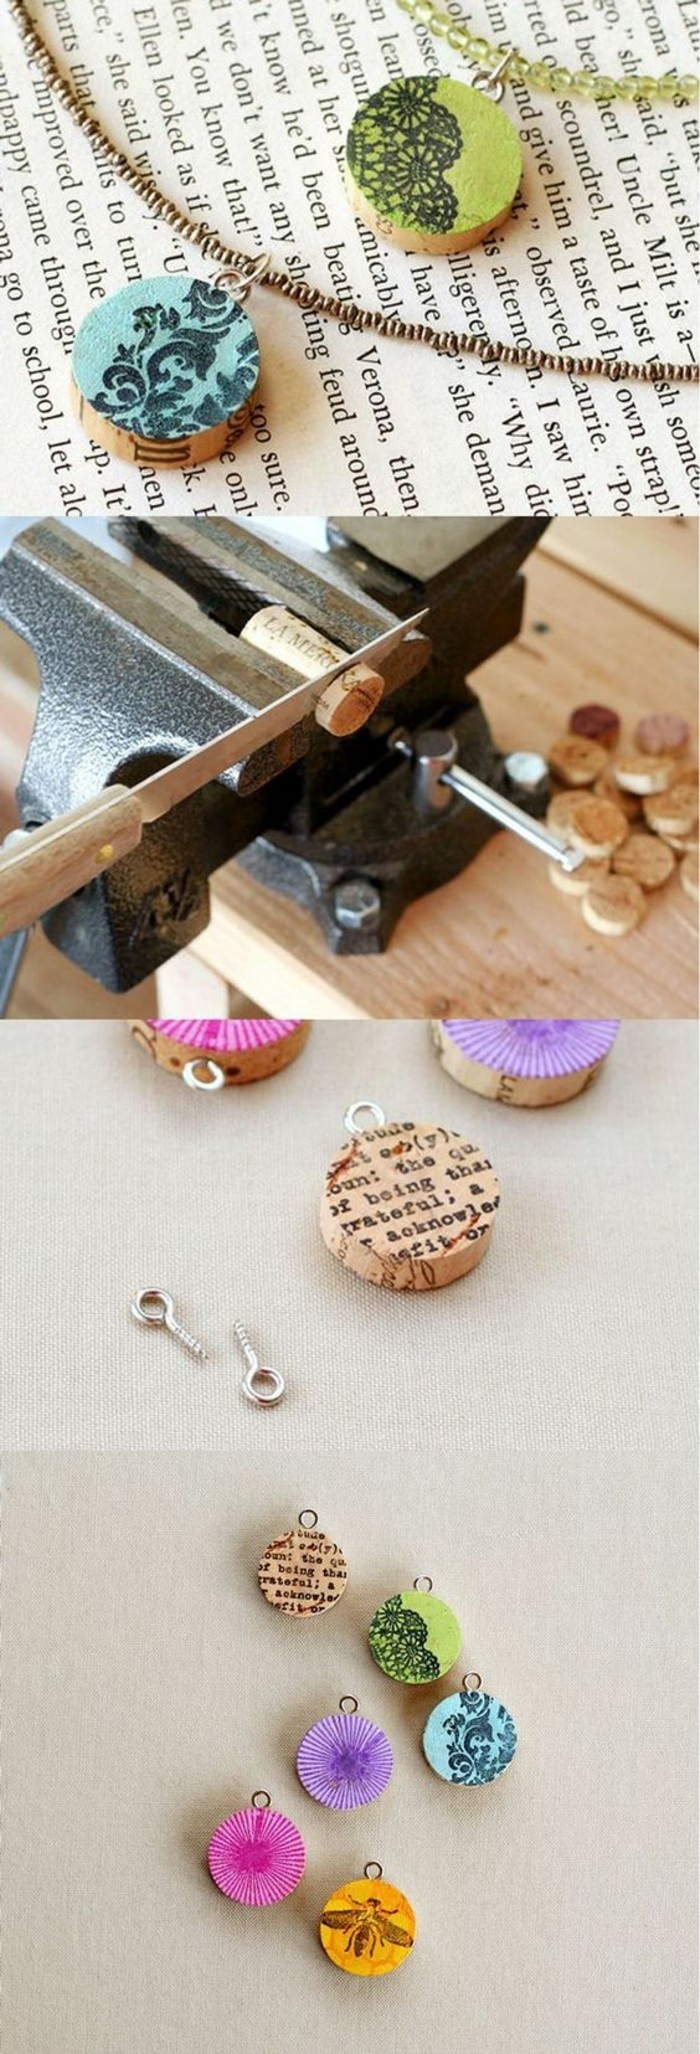 cork necklaces, with different prints, crafts to do at home, diy tutorial, step by step